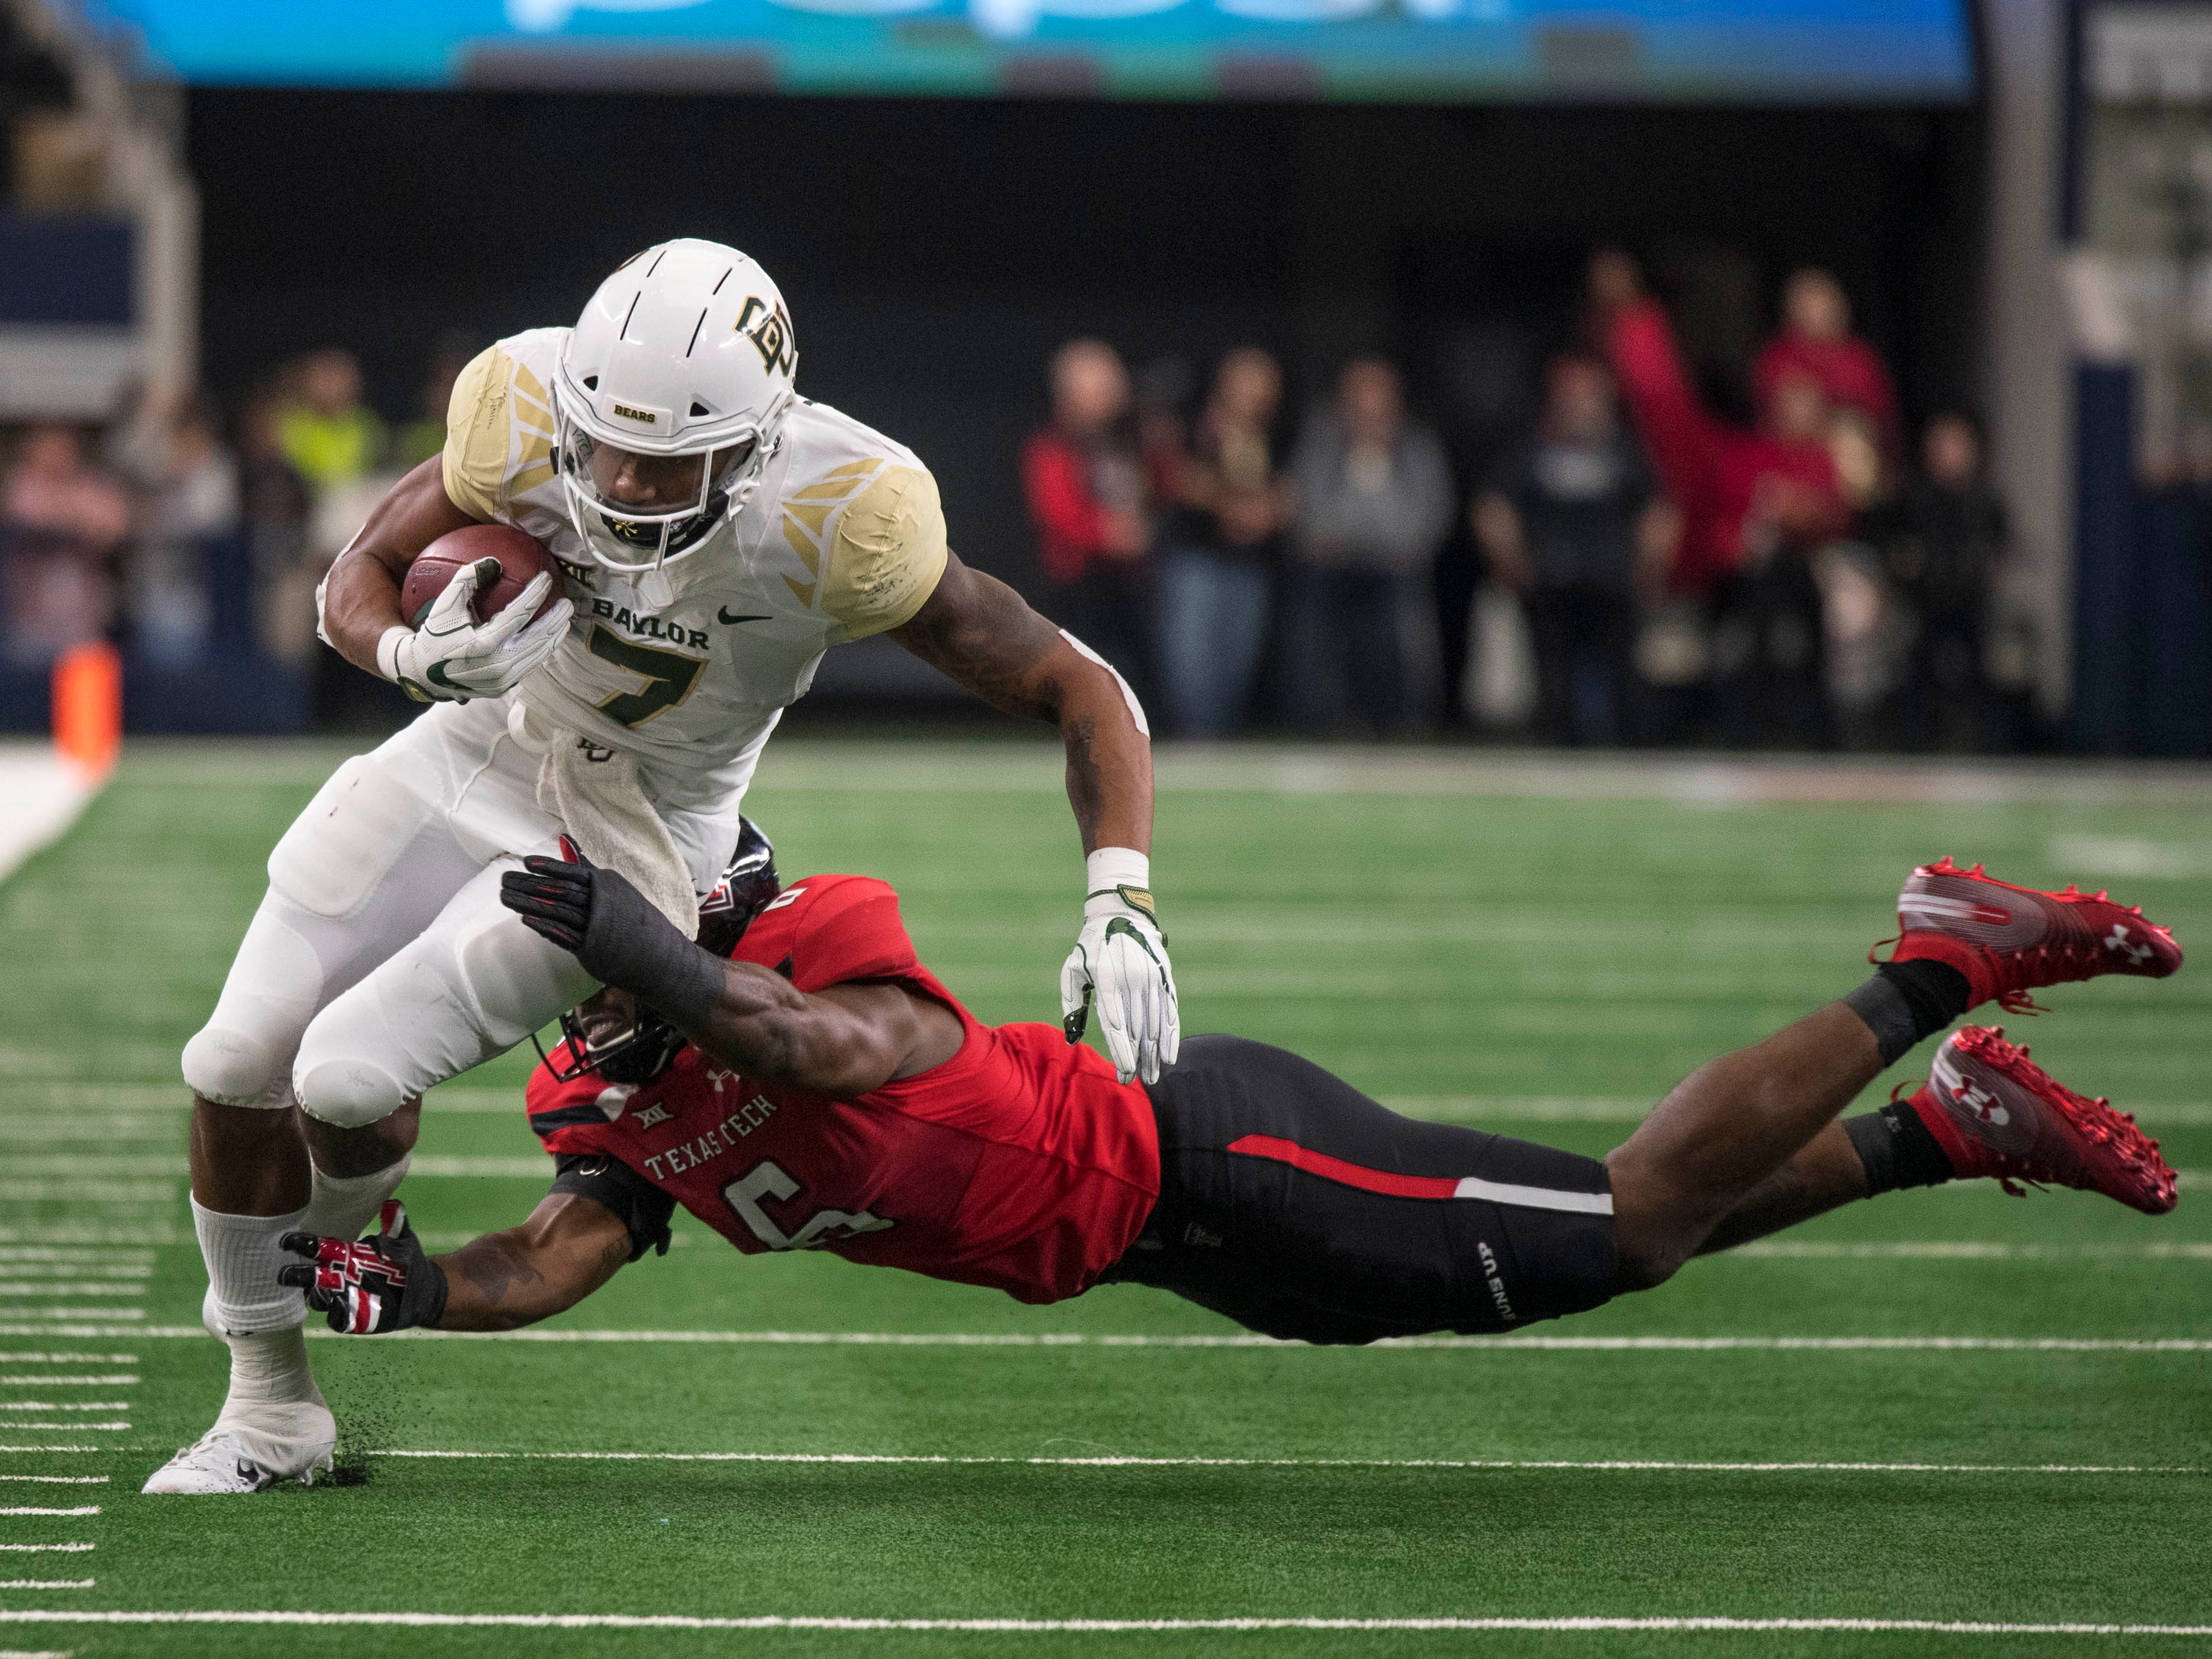 Baylor running back John Lovett tries to elude Texas Tech linebacker Riko Jeffers during the first quarter at AT&T Stadium.